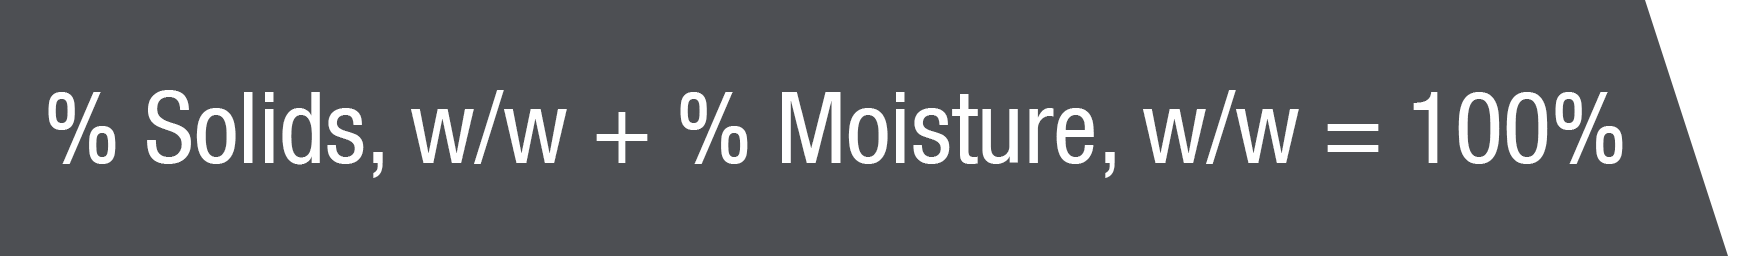 Solids-and-Moisture-calculation.png?mtime=20191028113728#asset:45124